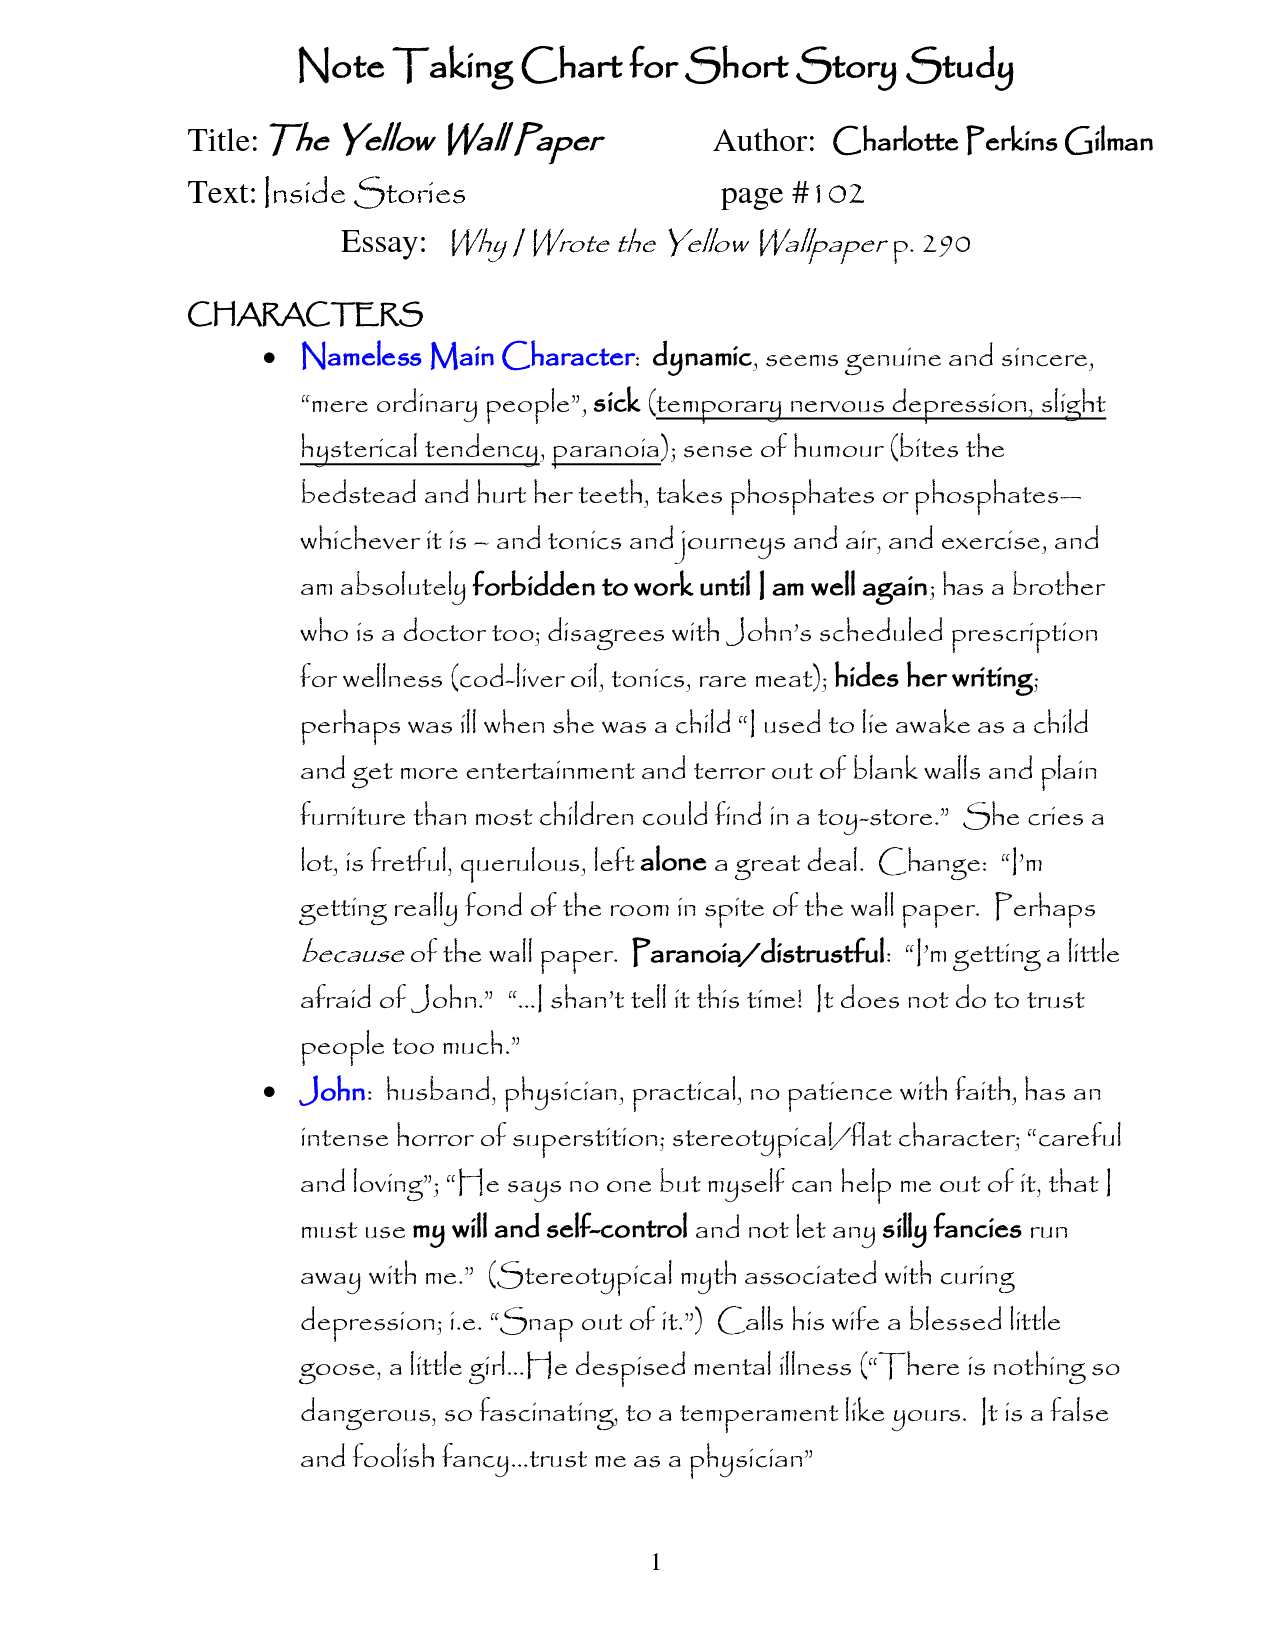 argumentative essay about the yellow wallpaper  essays on the  argumentative essay about the yellow wallpaper